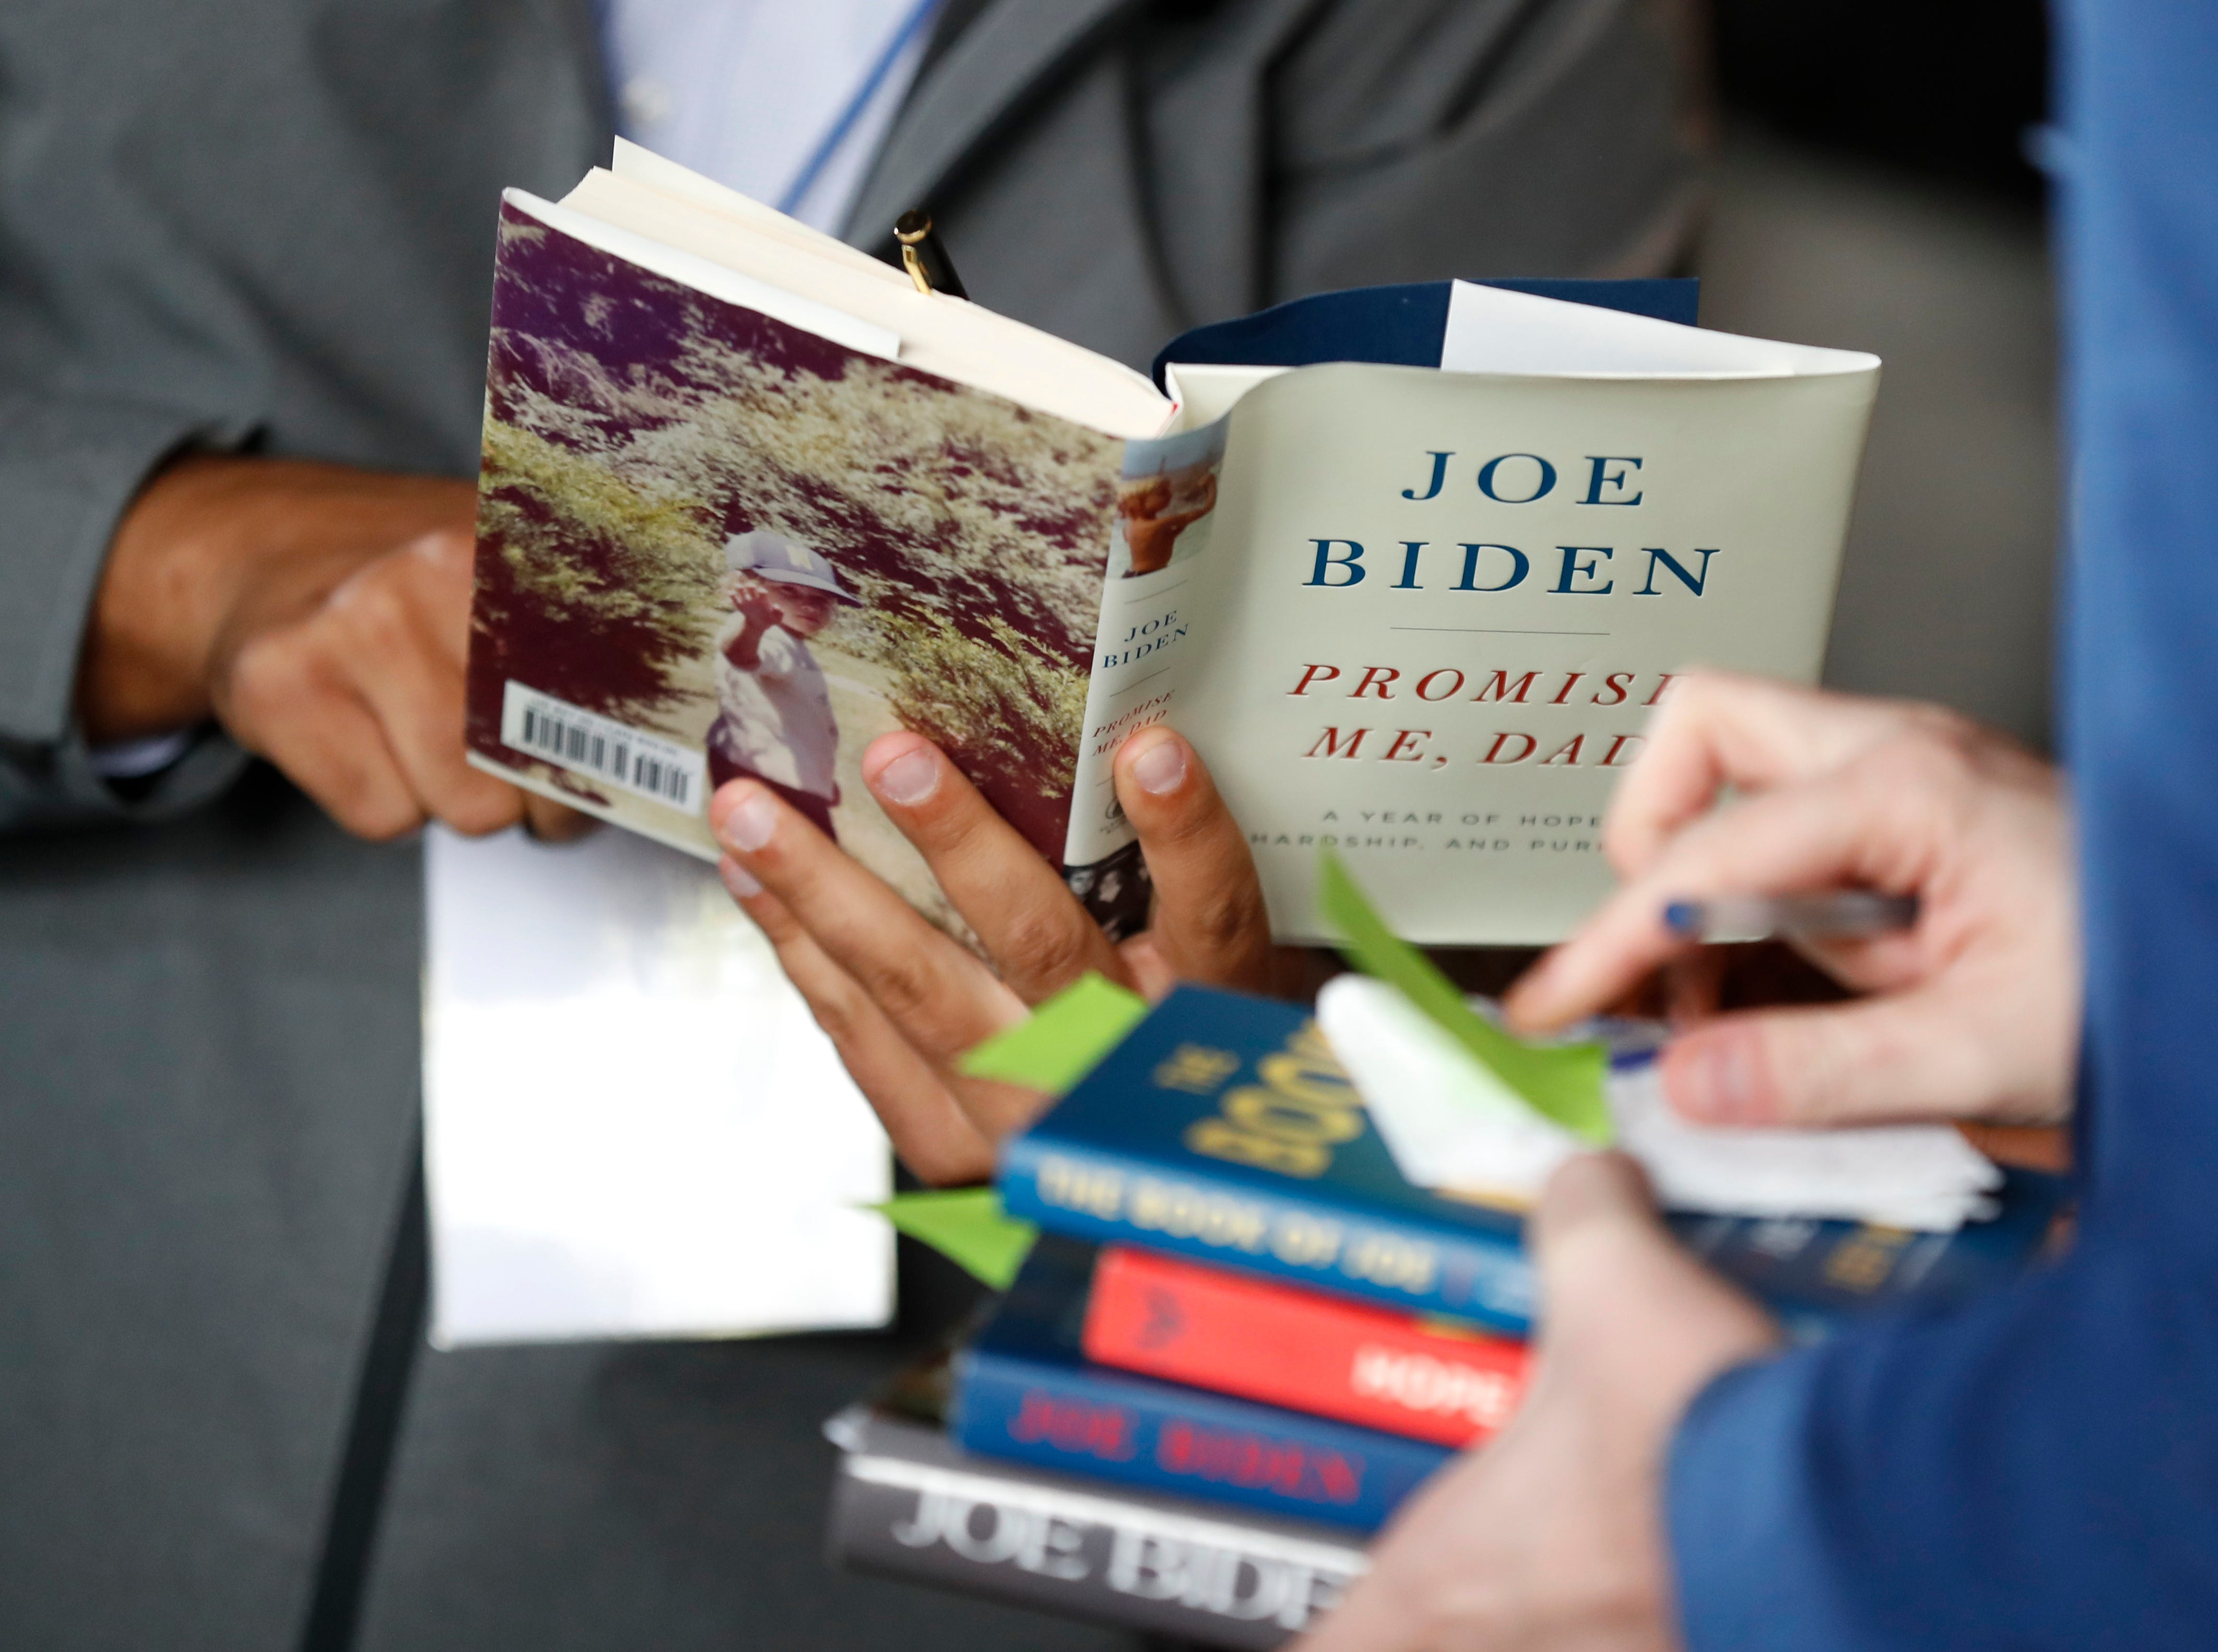 Campaign staffers hold books for former Vice President and Democratic presidential candidate Joe Biden to autograph during a rally, Wednesday, May 1, 2019, in Iowa City, Iowa.